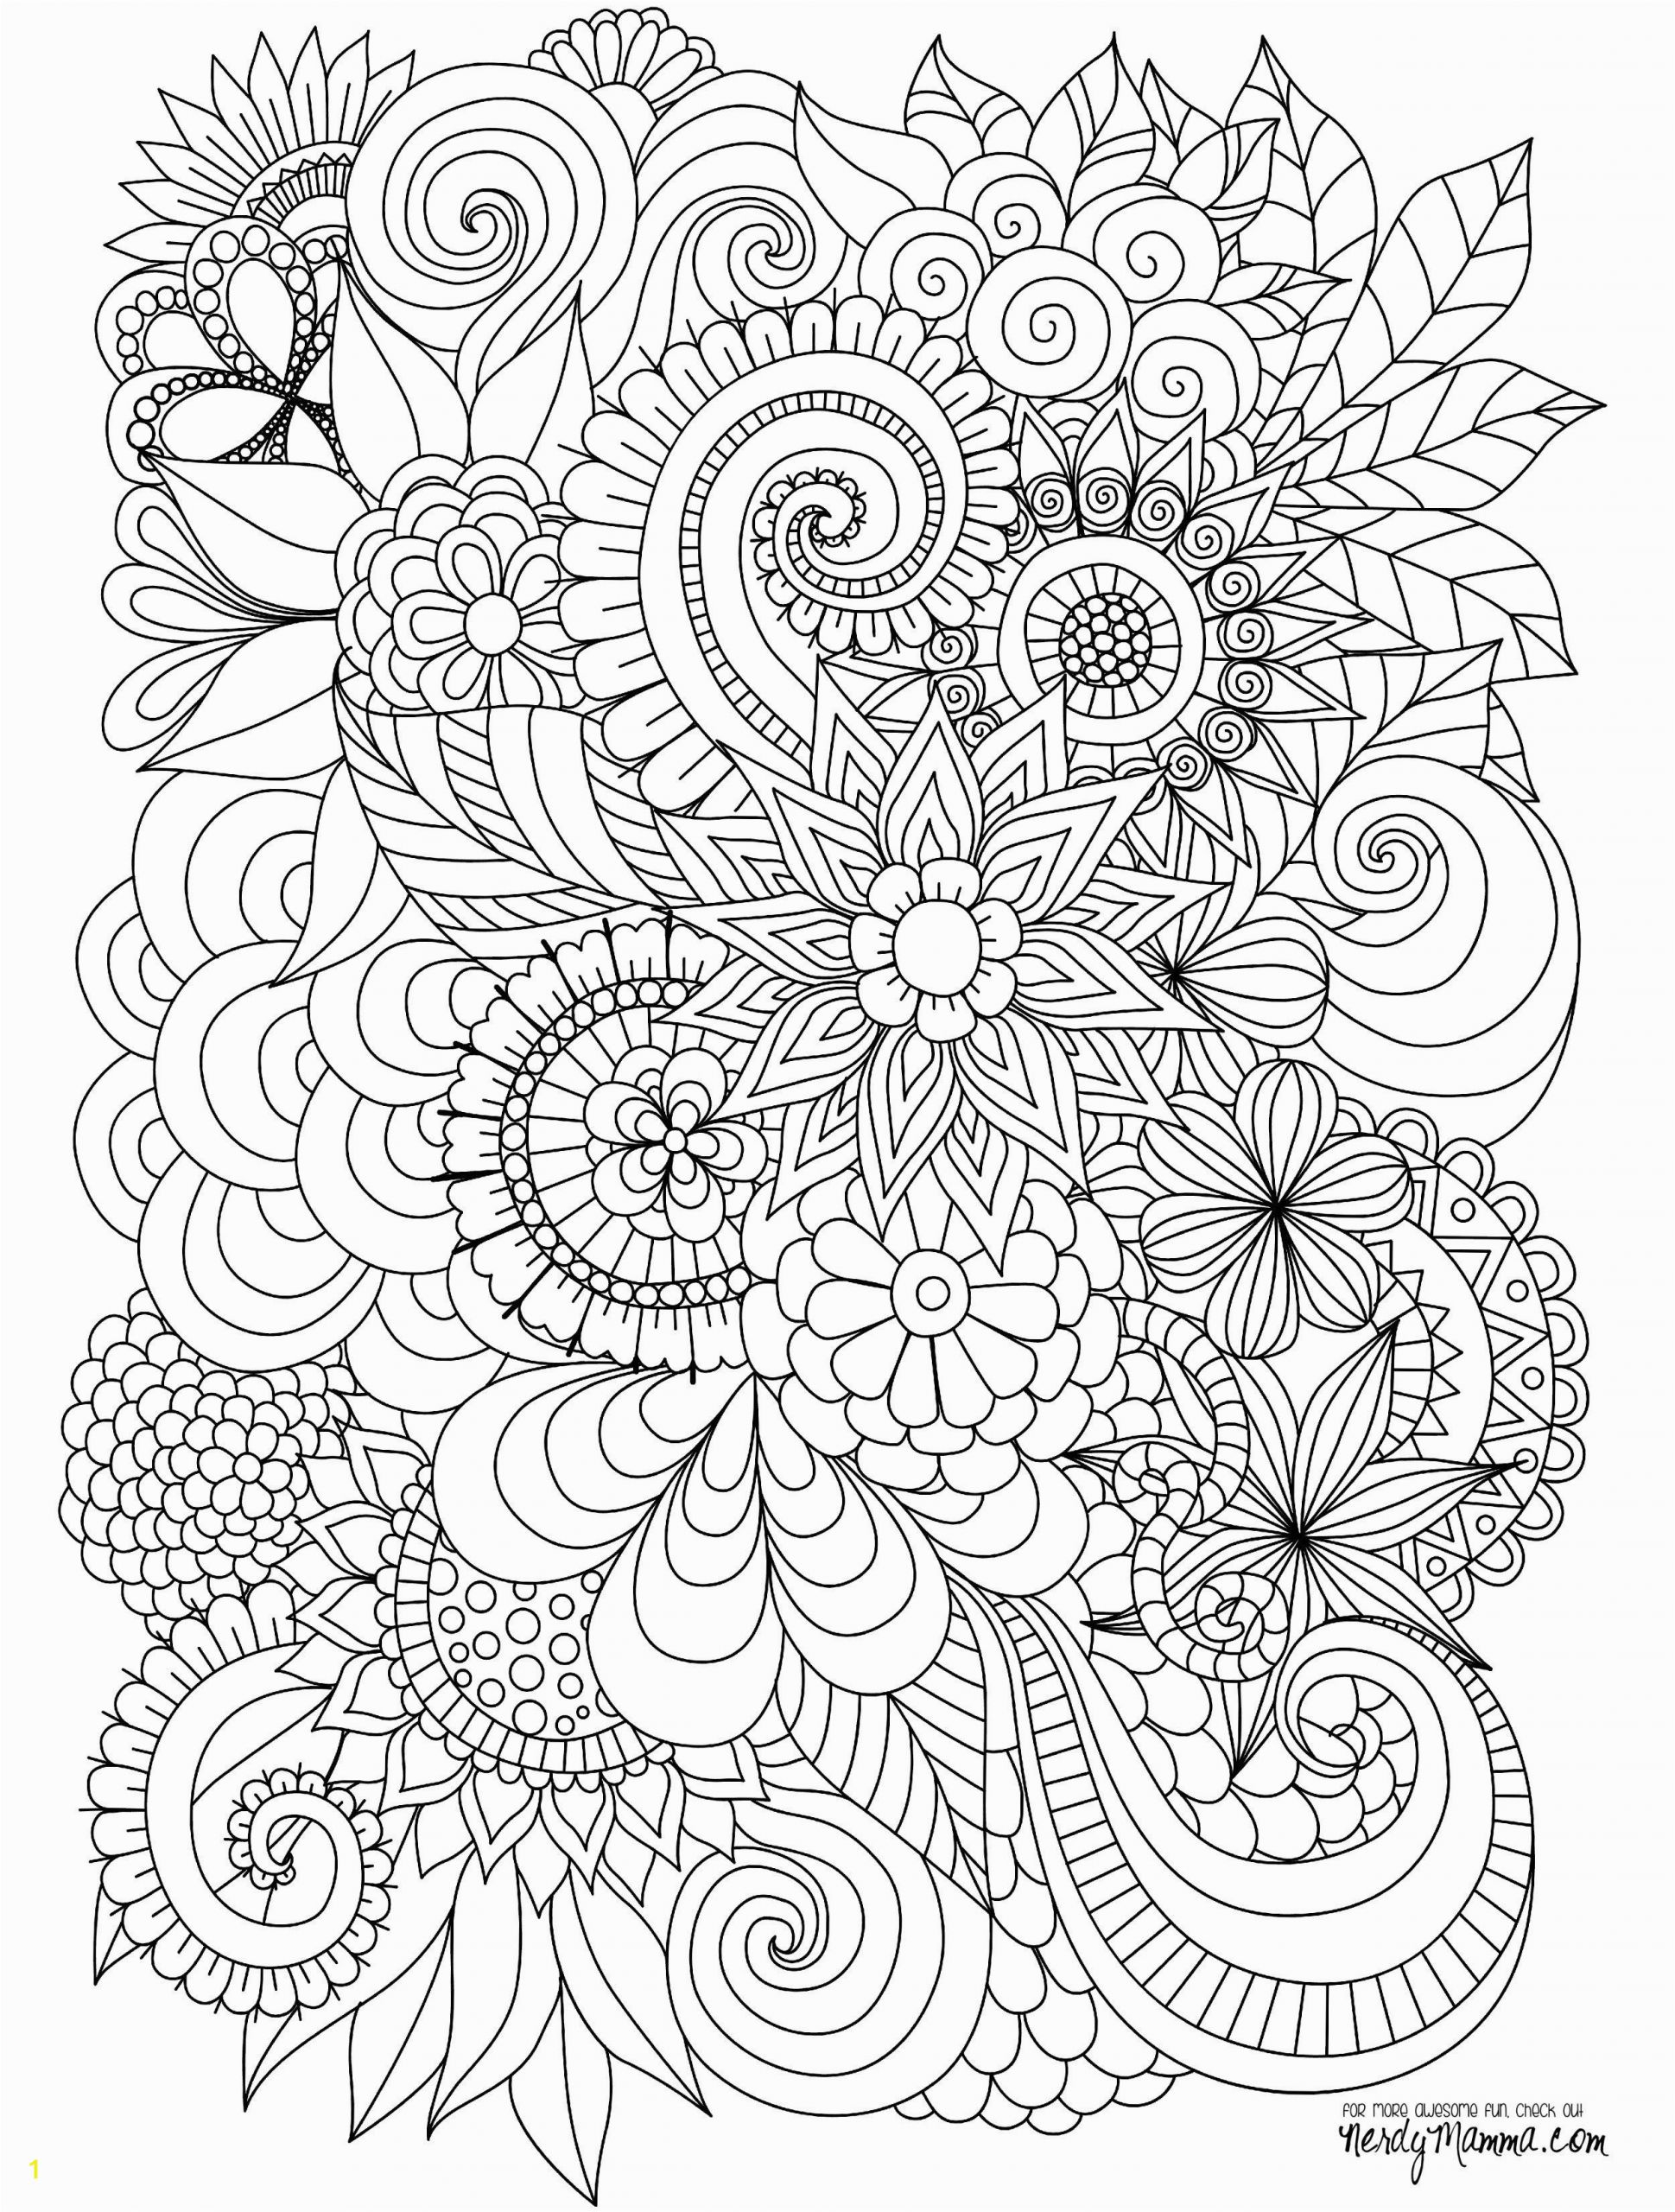 rose mandala coloring pages 28 compass rose coloring page in 2020 rose coloring pages mandala rose coloring